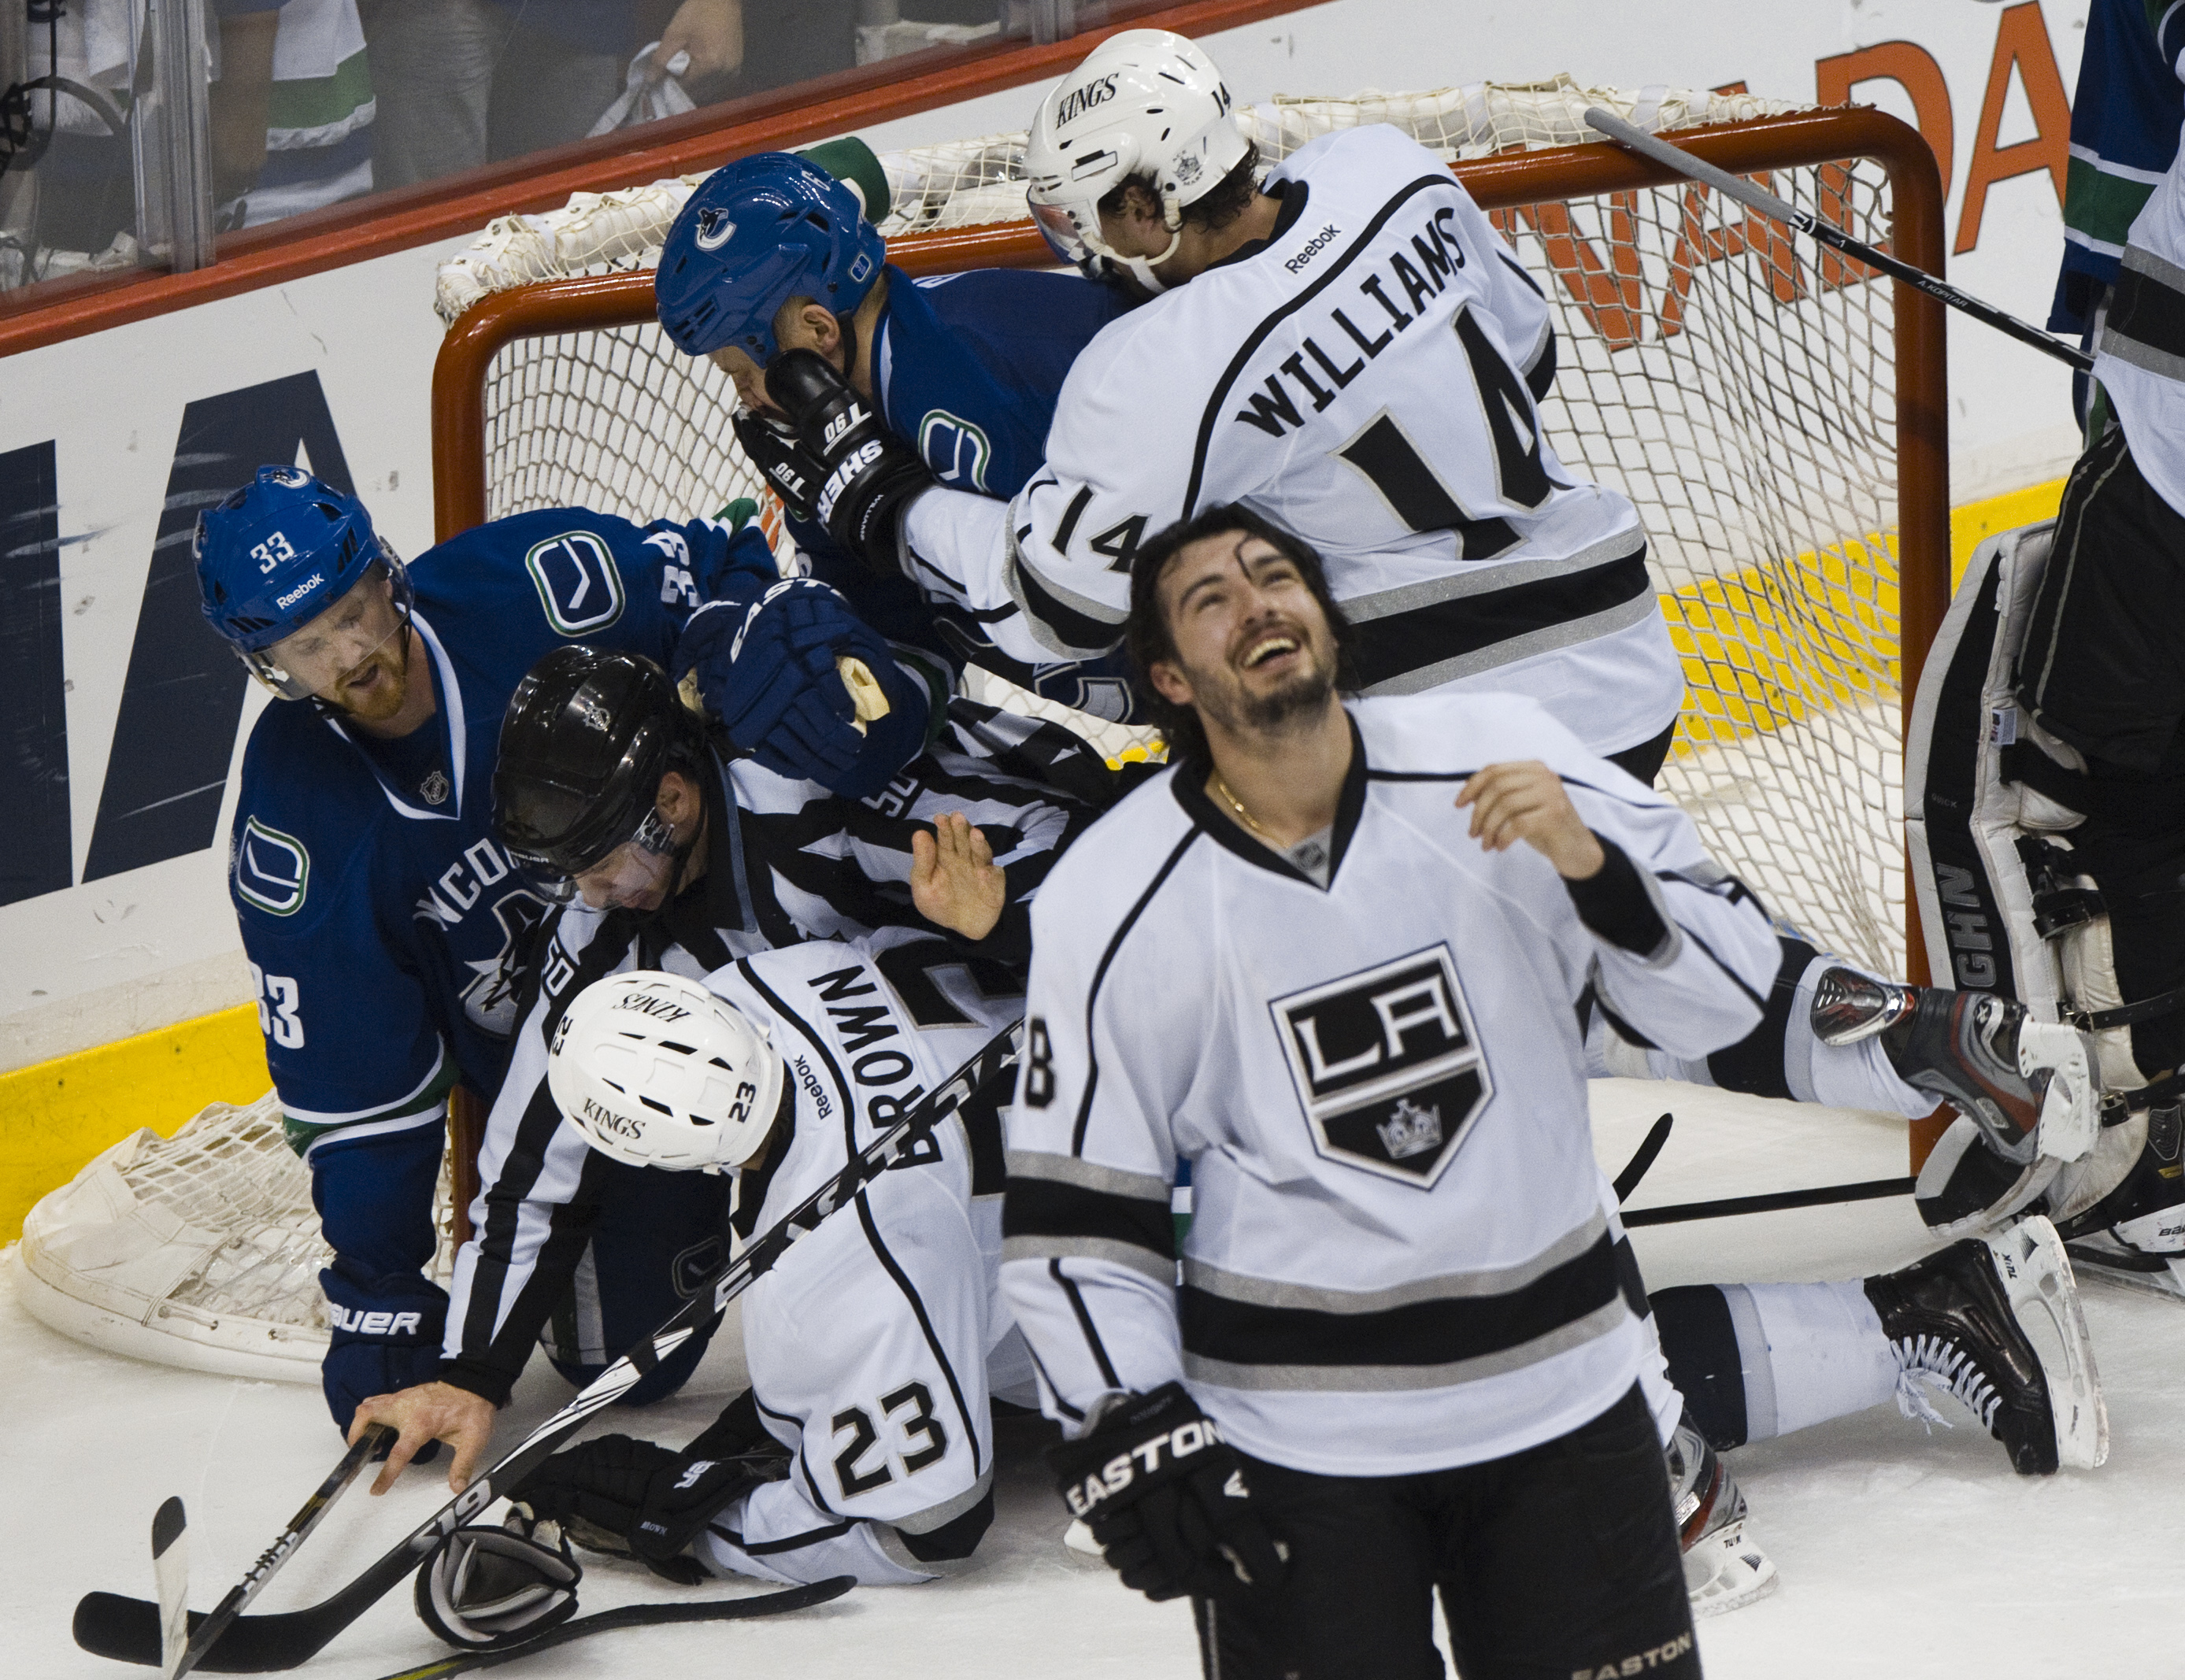 Ils Vancouver Canucks han spers cunter ils Los Angeles Kings cun 2:4.